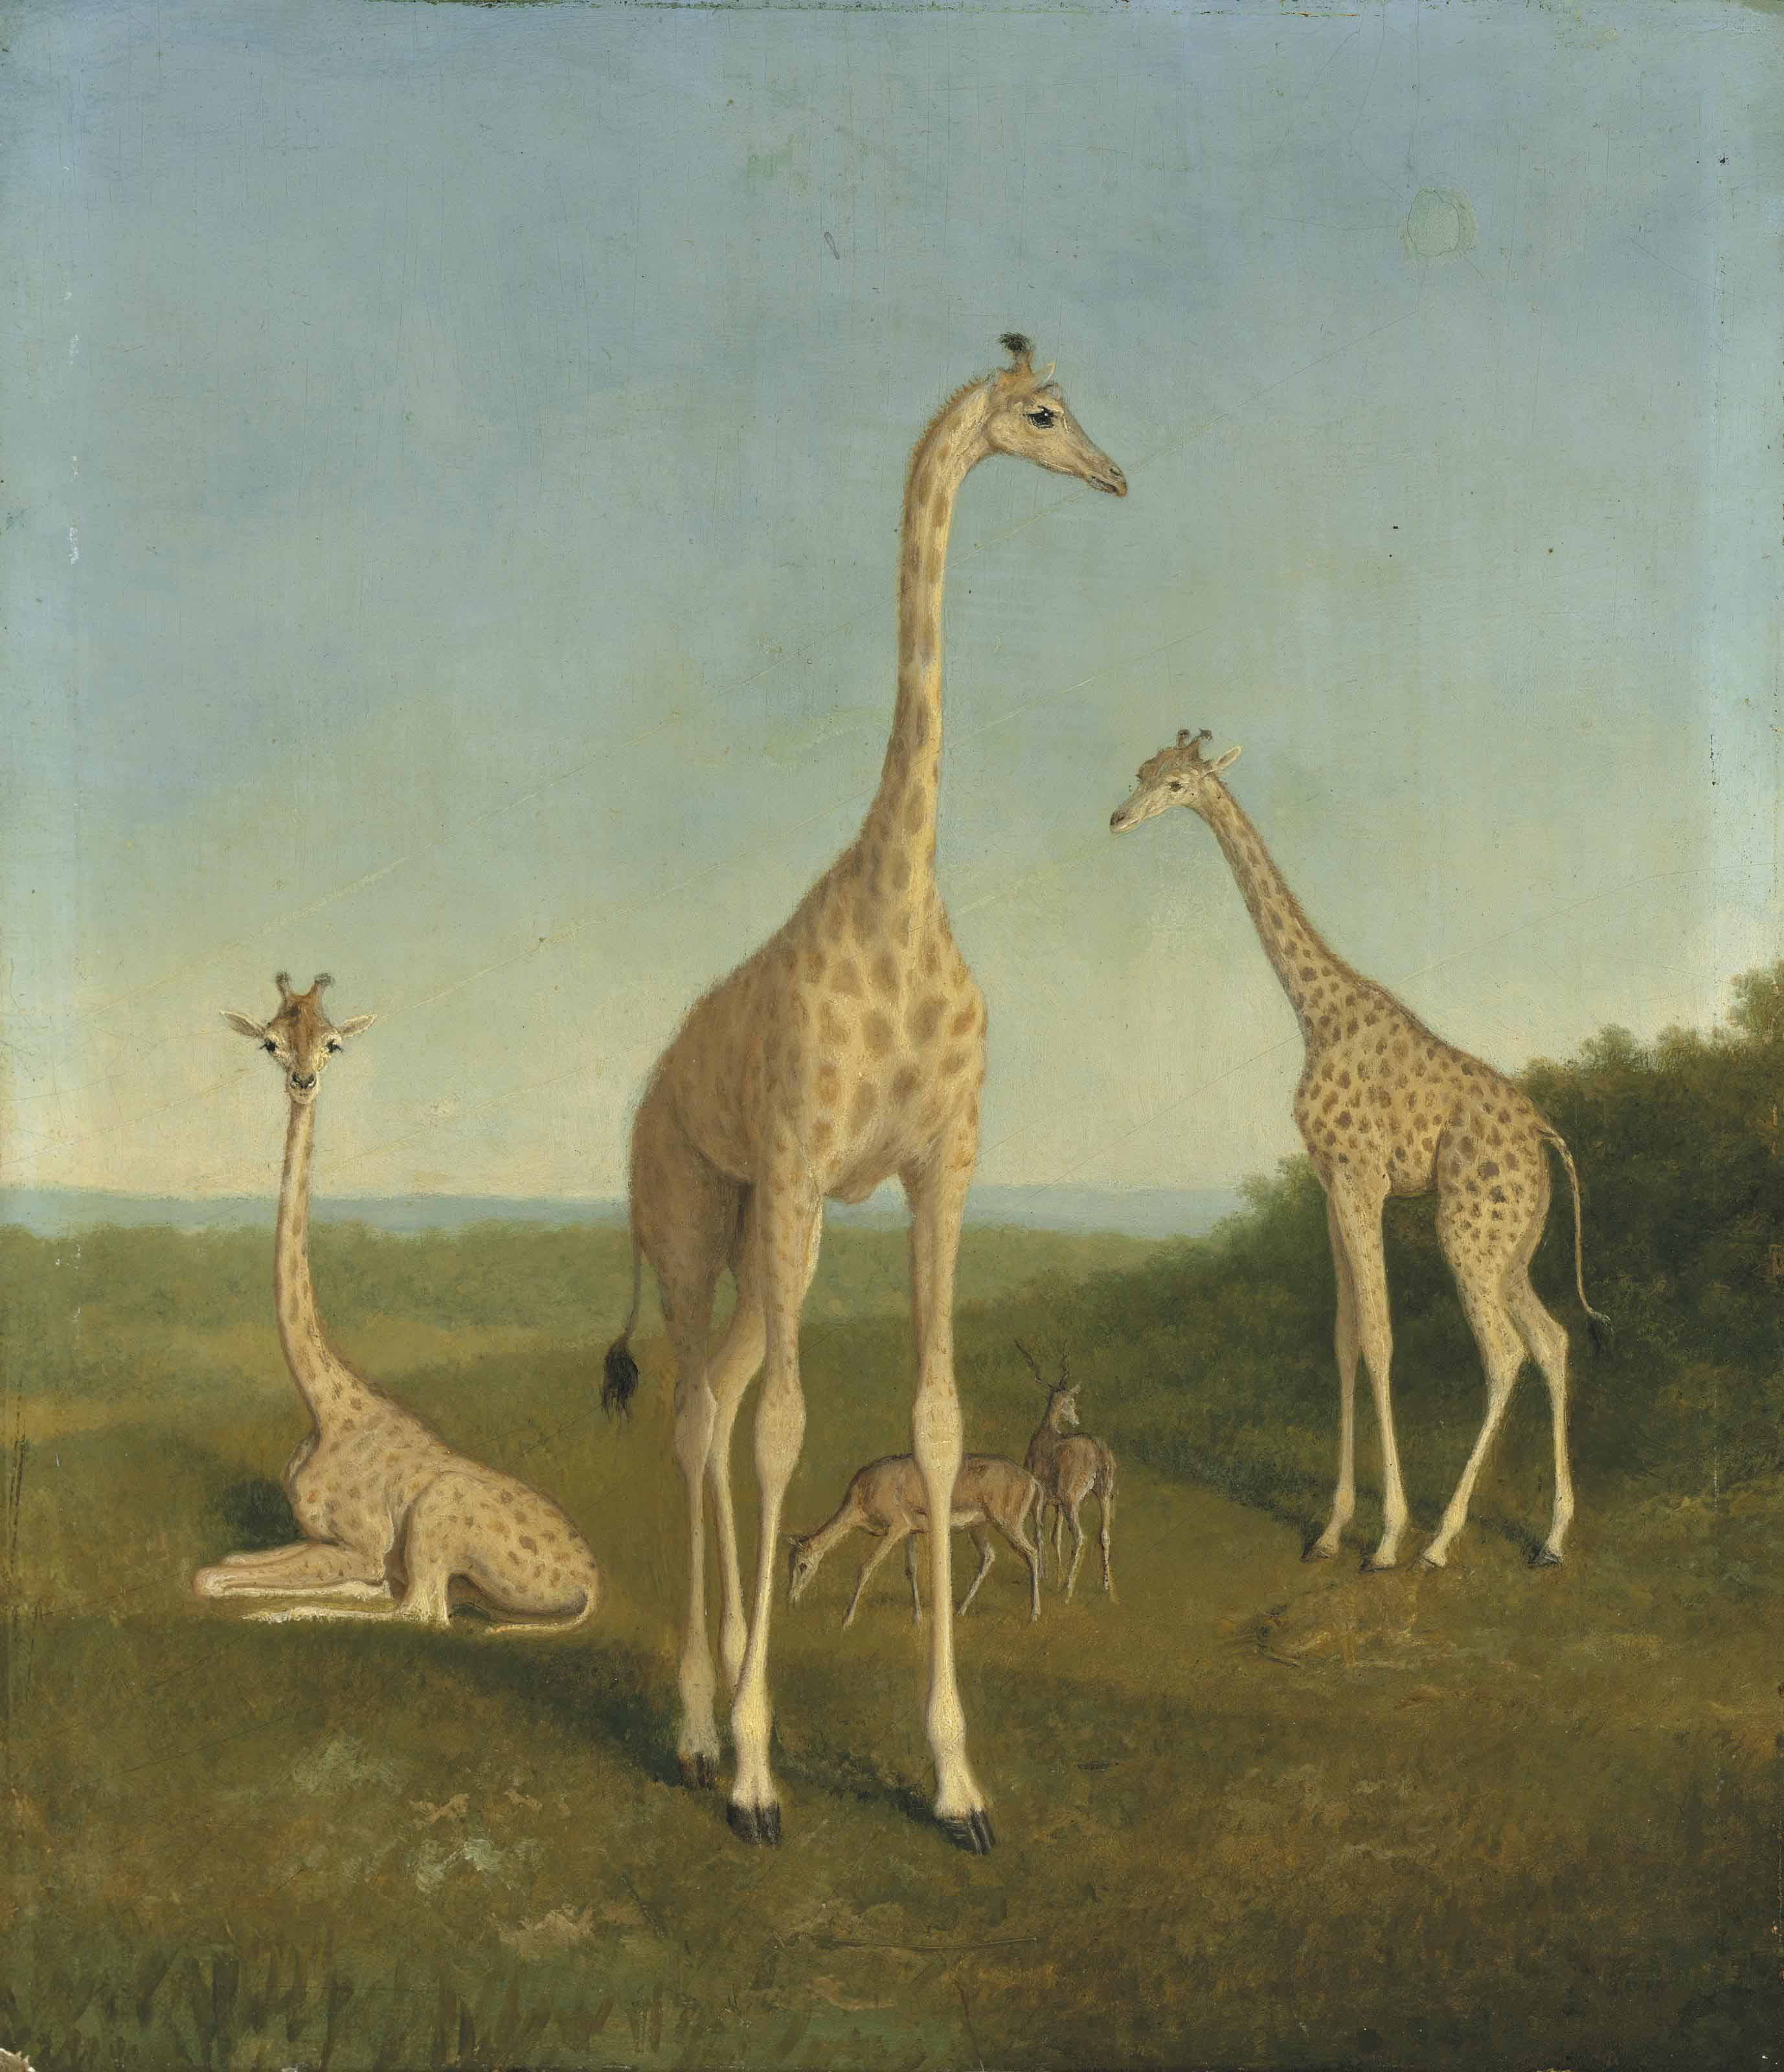 Giraffes with impala in a landscape